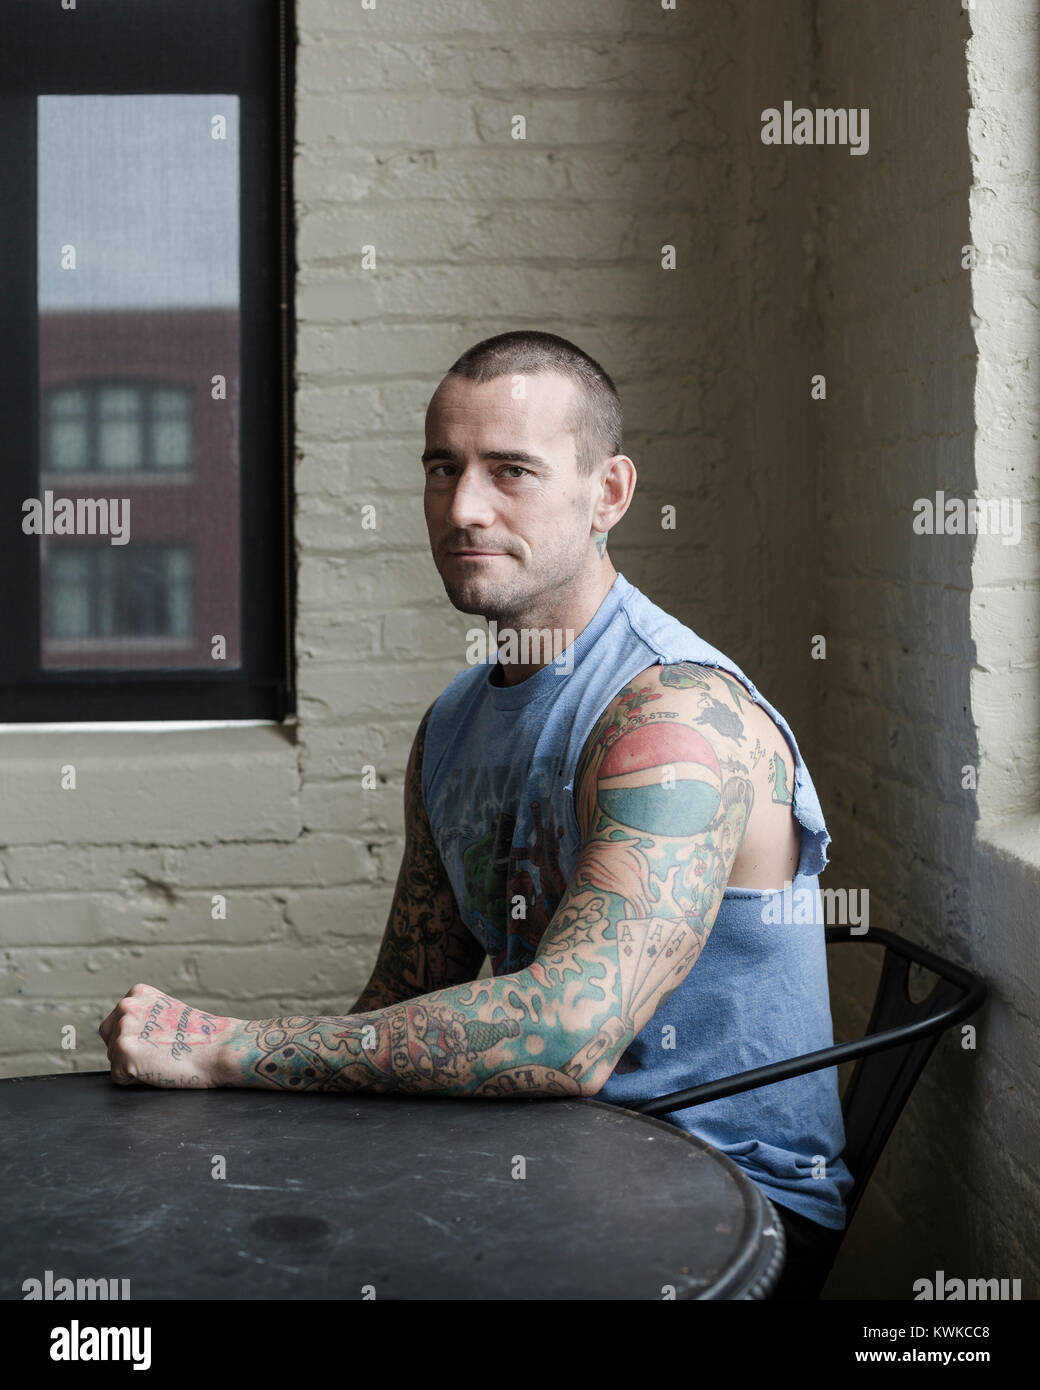 A portrait of CM Punk, former WWE wrestler, photographed in his apartment. - Stock Image